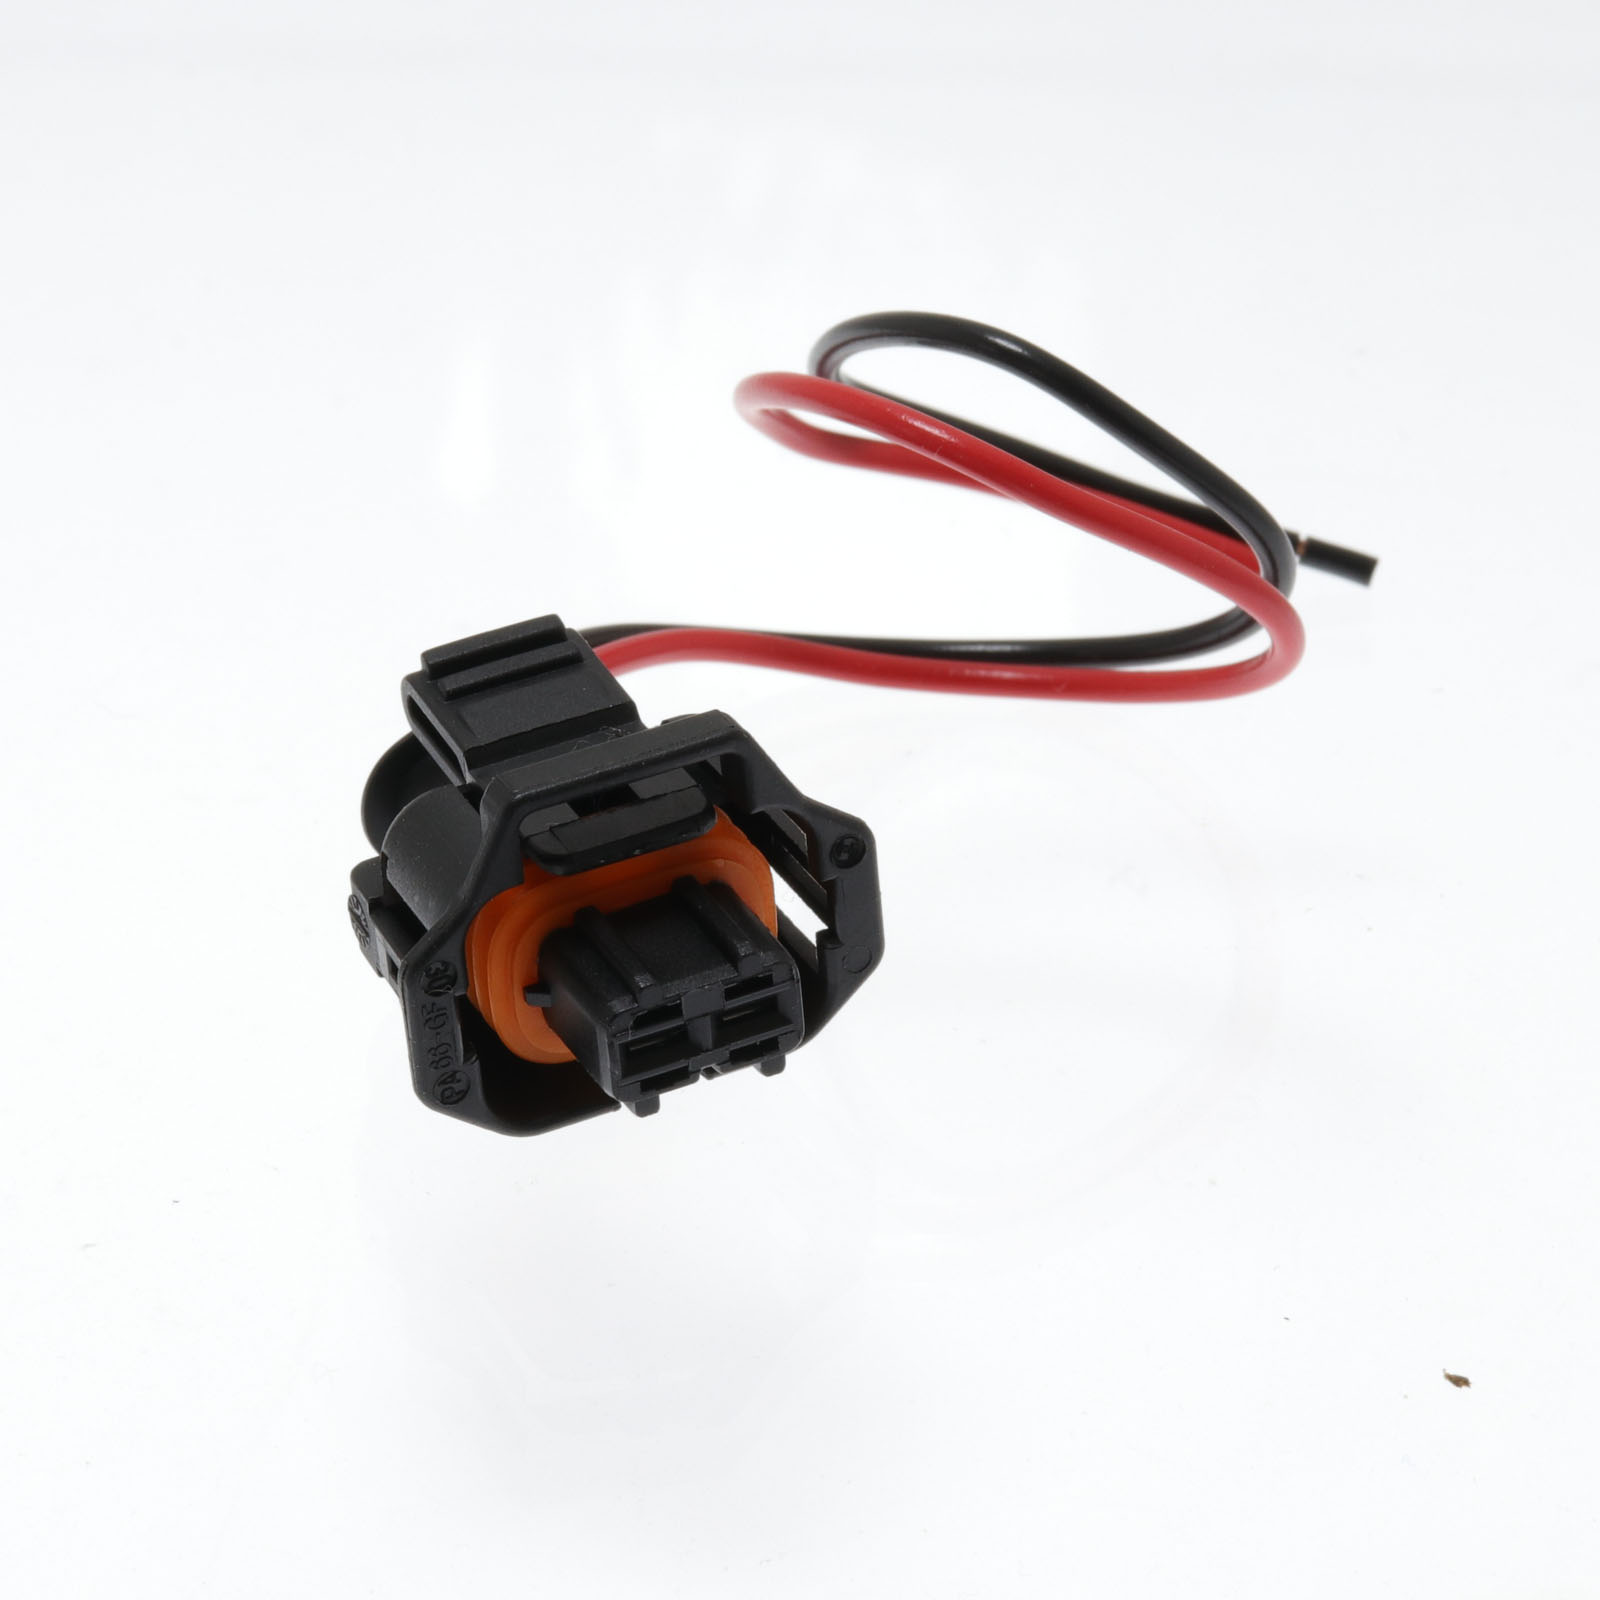 [DIAGRAM_0HG]  1Pcs PIGTAIL CONNECTOR PT2183 FUEL INJECTION Harness Wiring CHEVROLET  DIESEL NEW for LLY LBZ LLM SAAB 9 3 & 9 5 1.9 DIESEL REPA wire cell wire  pushwire wrapping - AliExpress   Lbz Wiring Harness      www.aliexpress.com